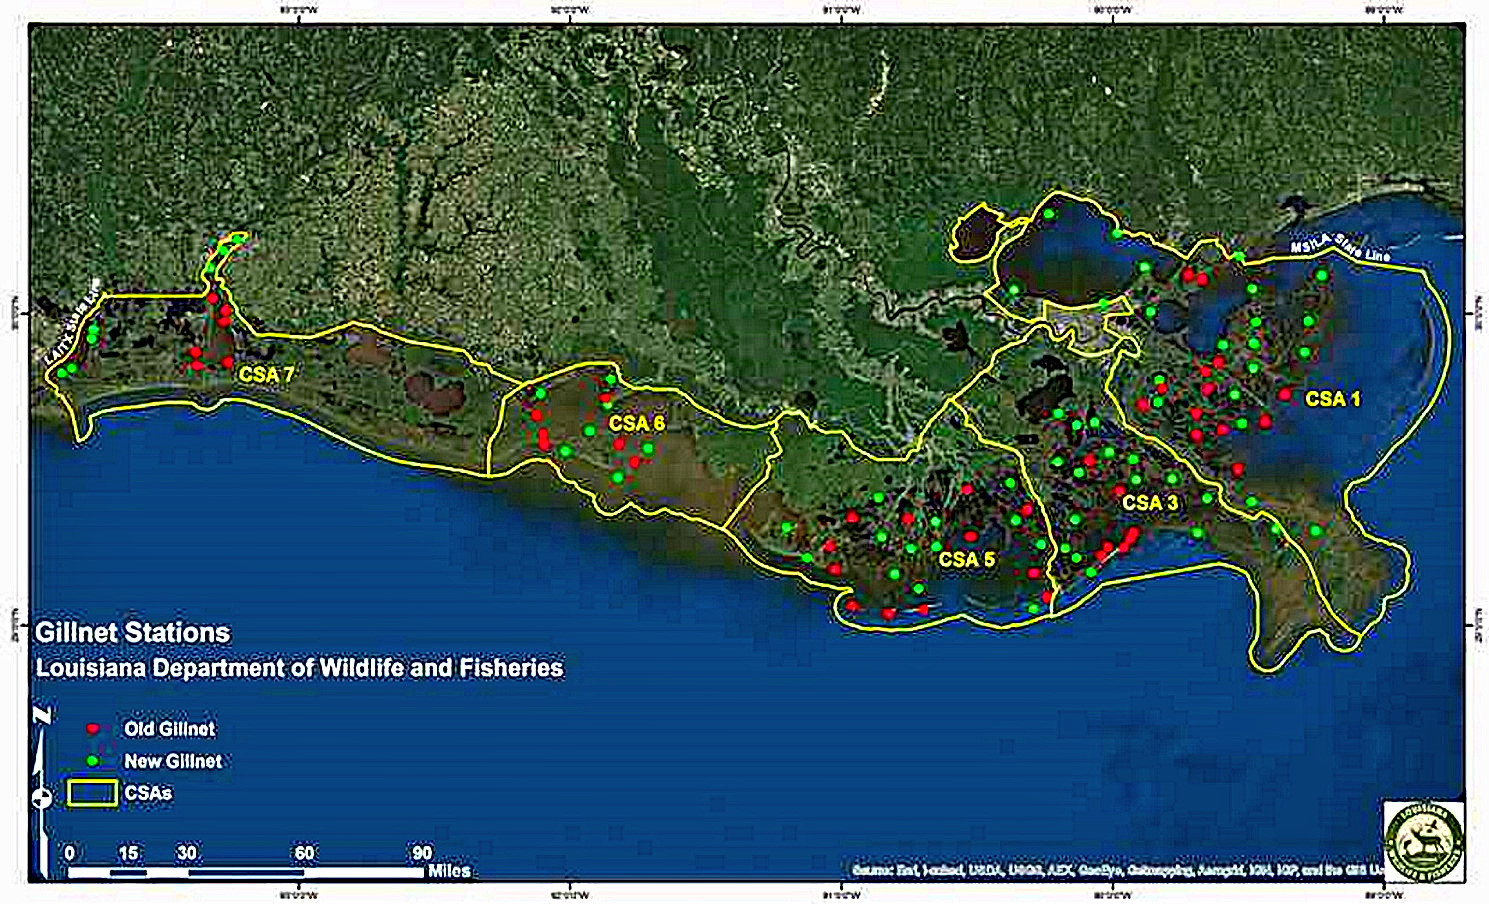 This LDWF slide shows the number of locations in each coastal study area (Basin) where sites are randomly chosen for striking LDWF gillnets. The green dots on the slide are locations that were added in October 2010 allowing more spatial coverage in each coastal study area (Basin). (Photo courtesy LDWF)